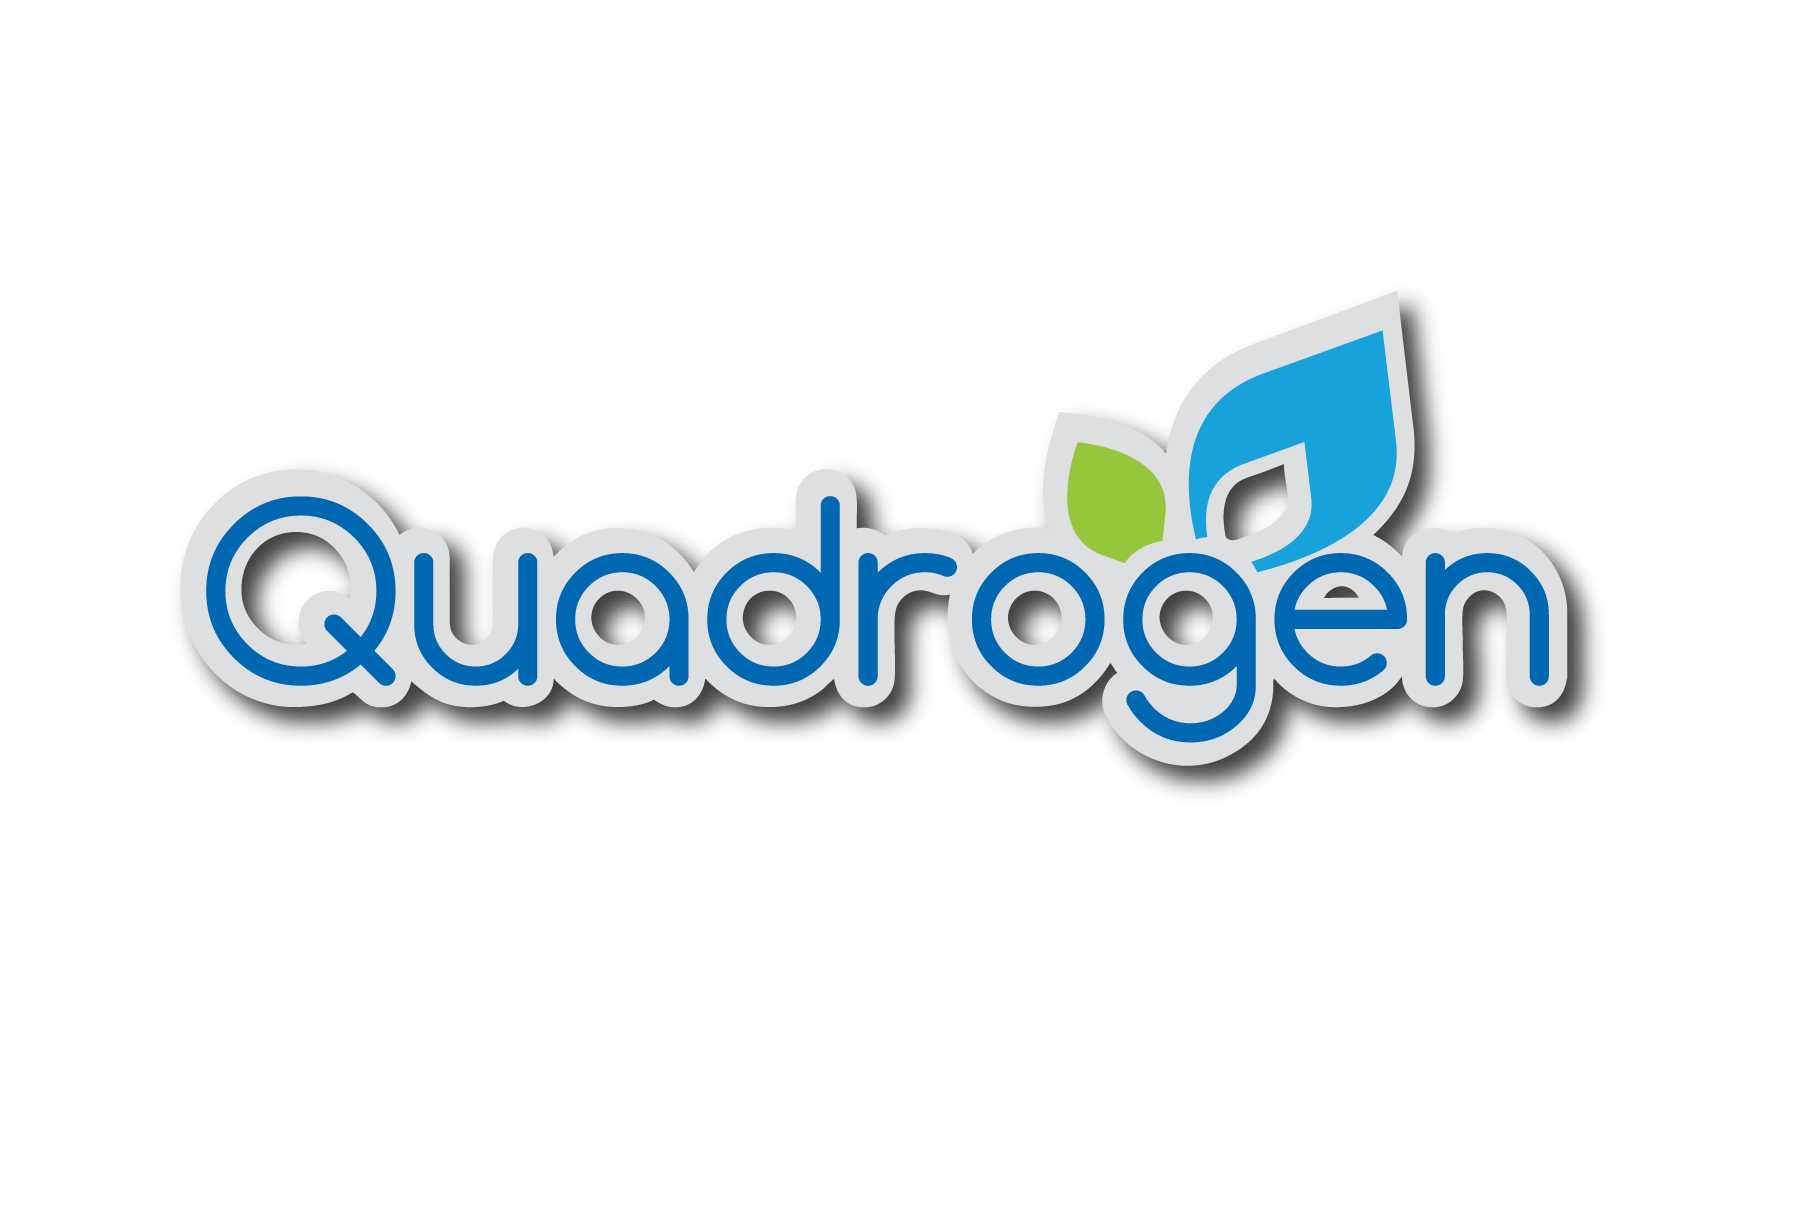 Logo Design by 354studio - Entry No. 114 in the Logo Design Contest New Logo Design for Quadrogen Power Systems, Inc.